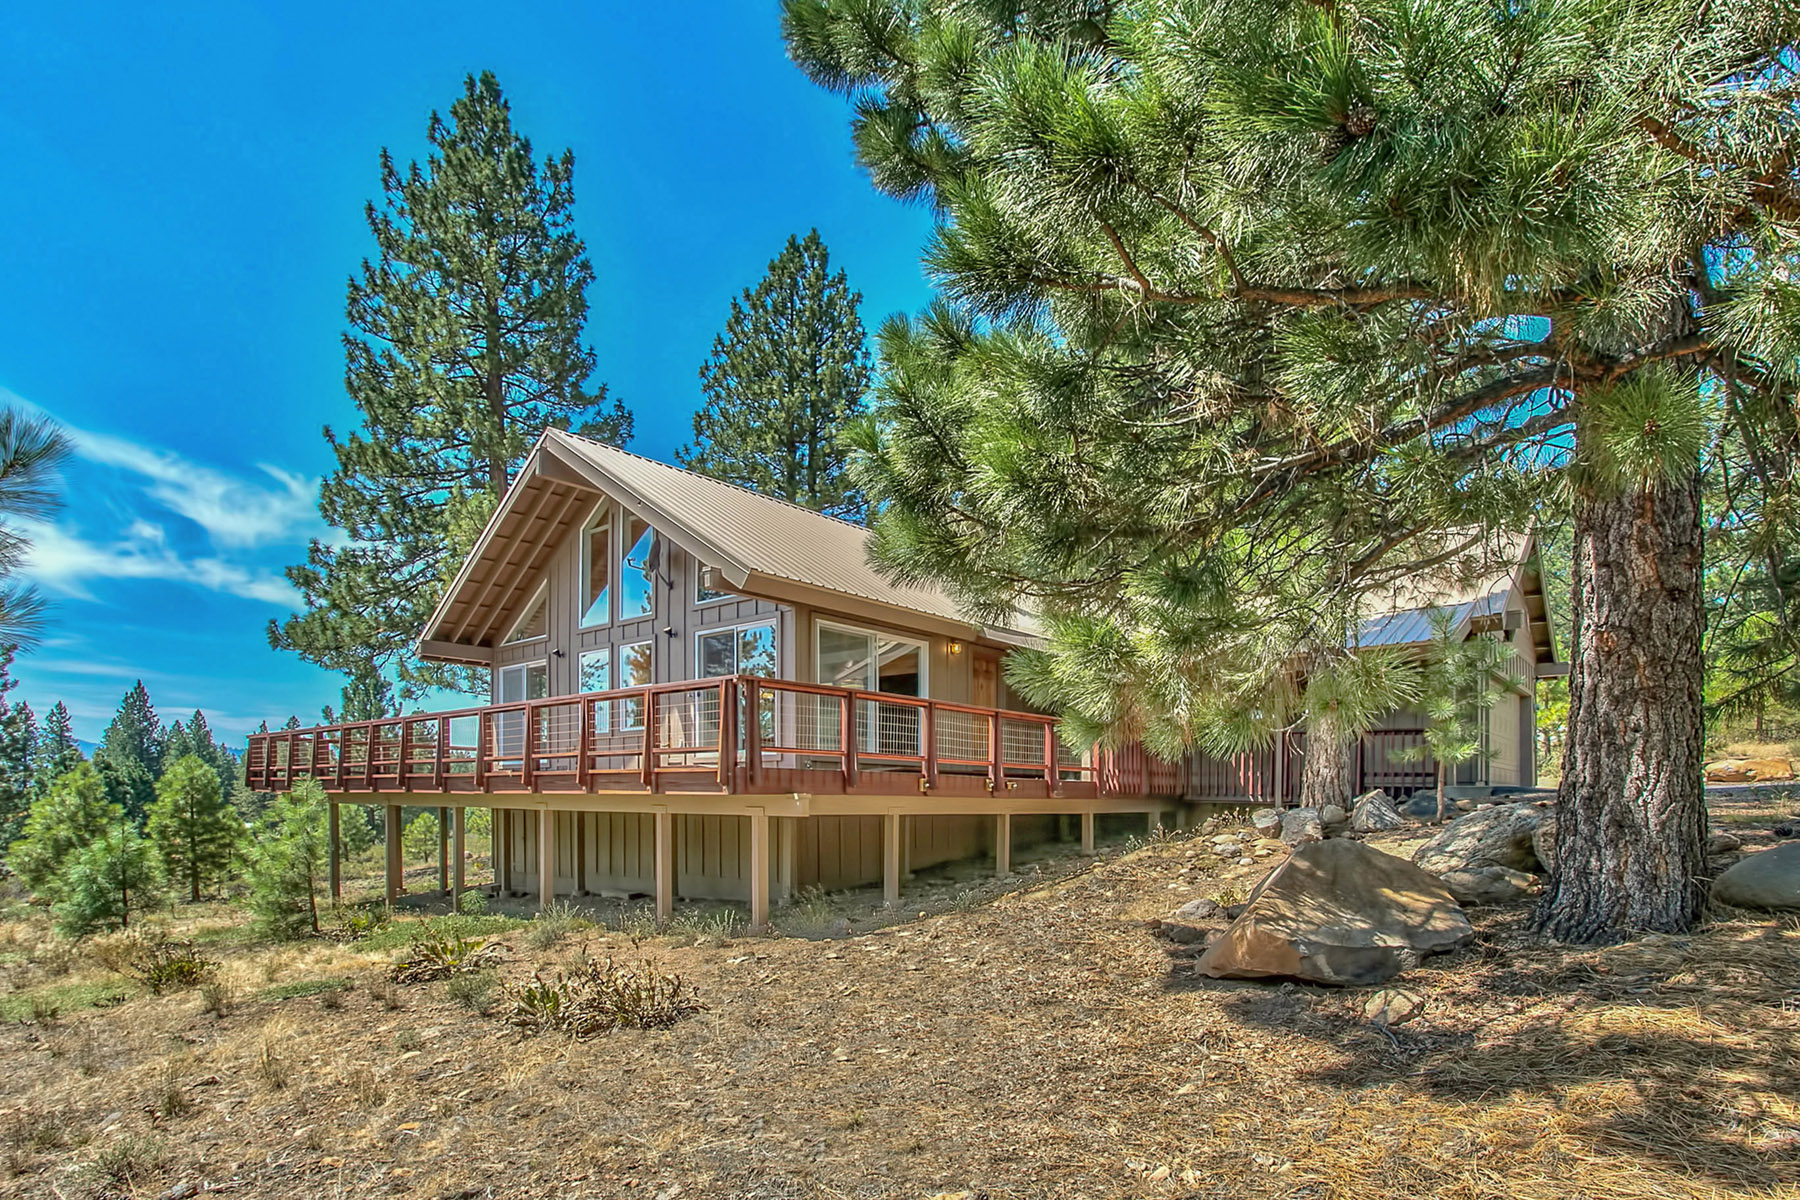 for Sale at 12797 Horizon Drive Old Greenwood, Truckee, California 96161 United States